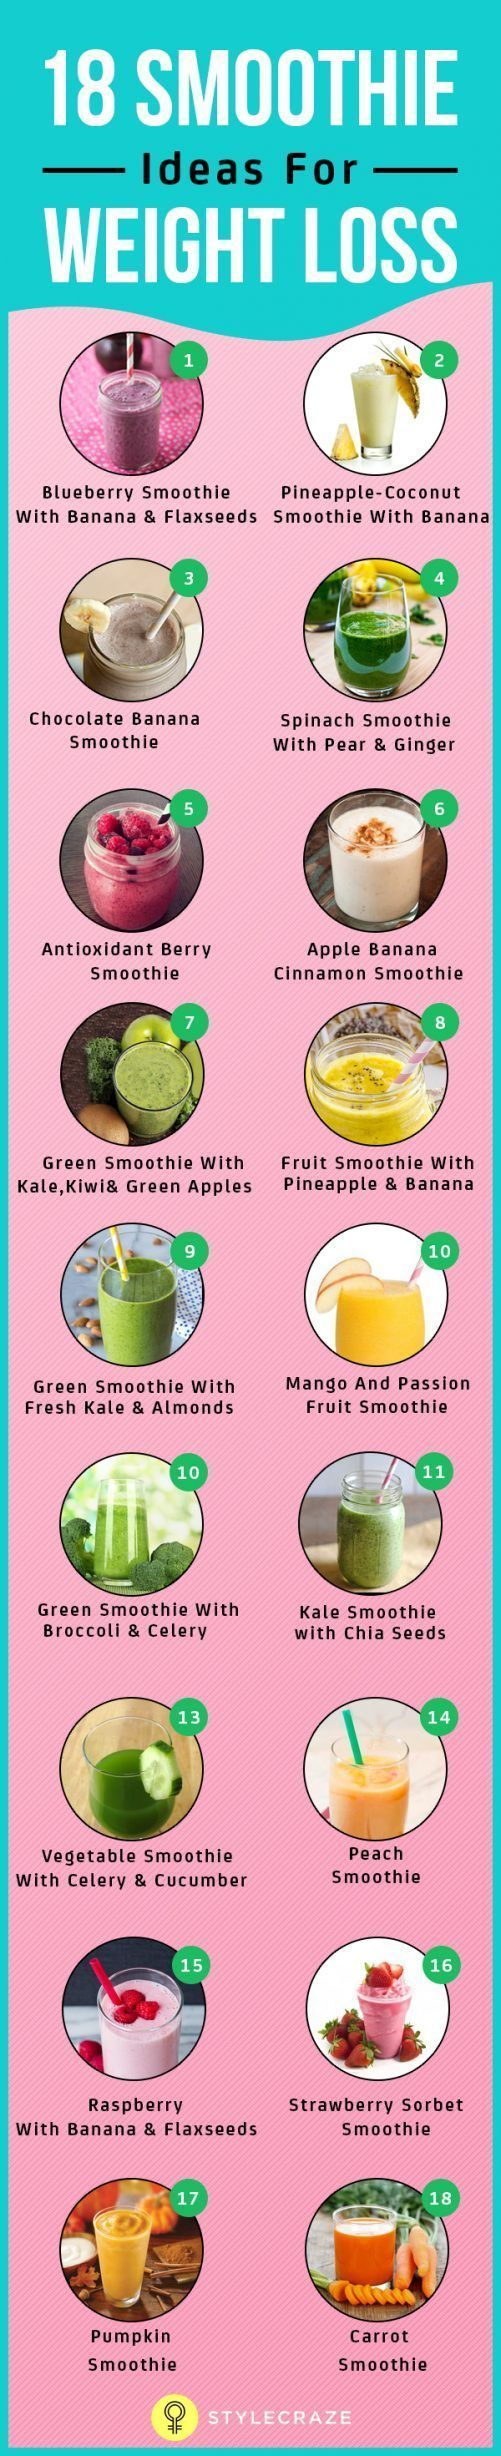 Smoothies and shakes can be used to help you pre-workout, post-workout, and to meet some achievements like muscle gain in the gym. They can also help you with weight loss and here are 18 ideas to get started.